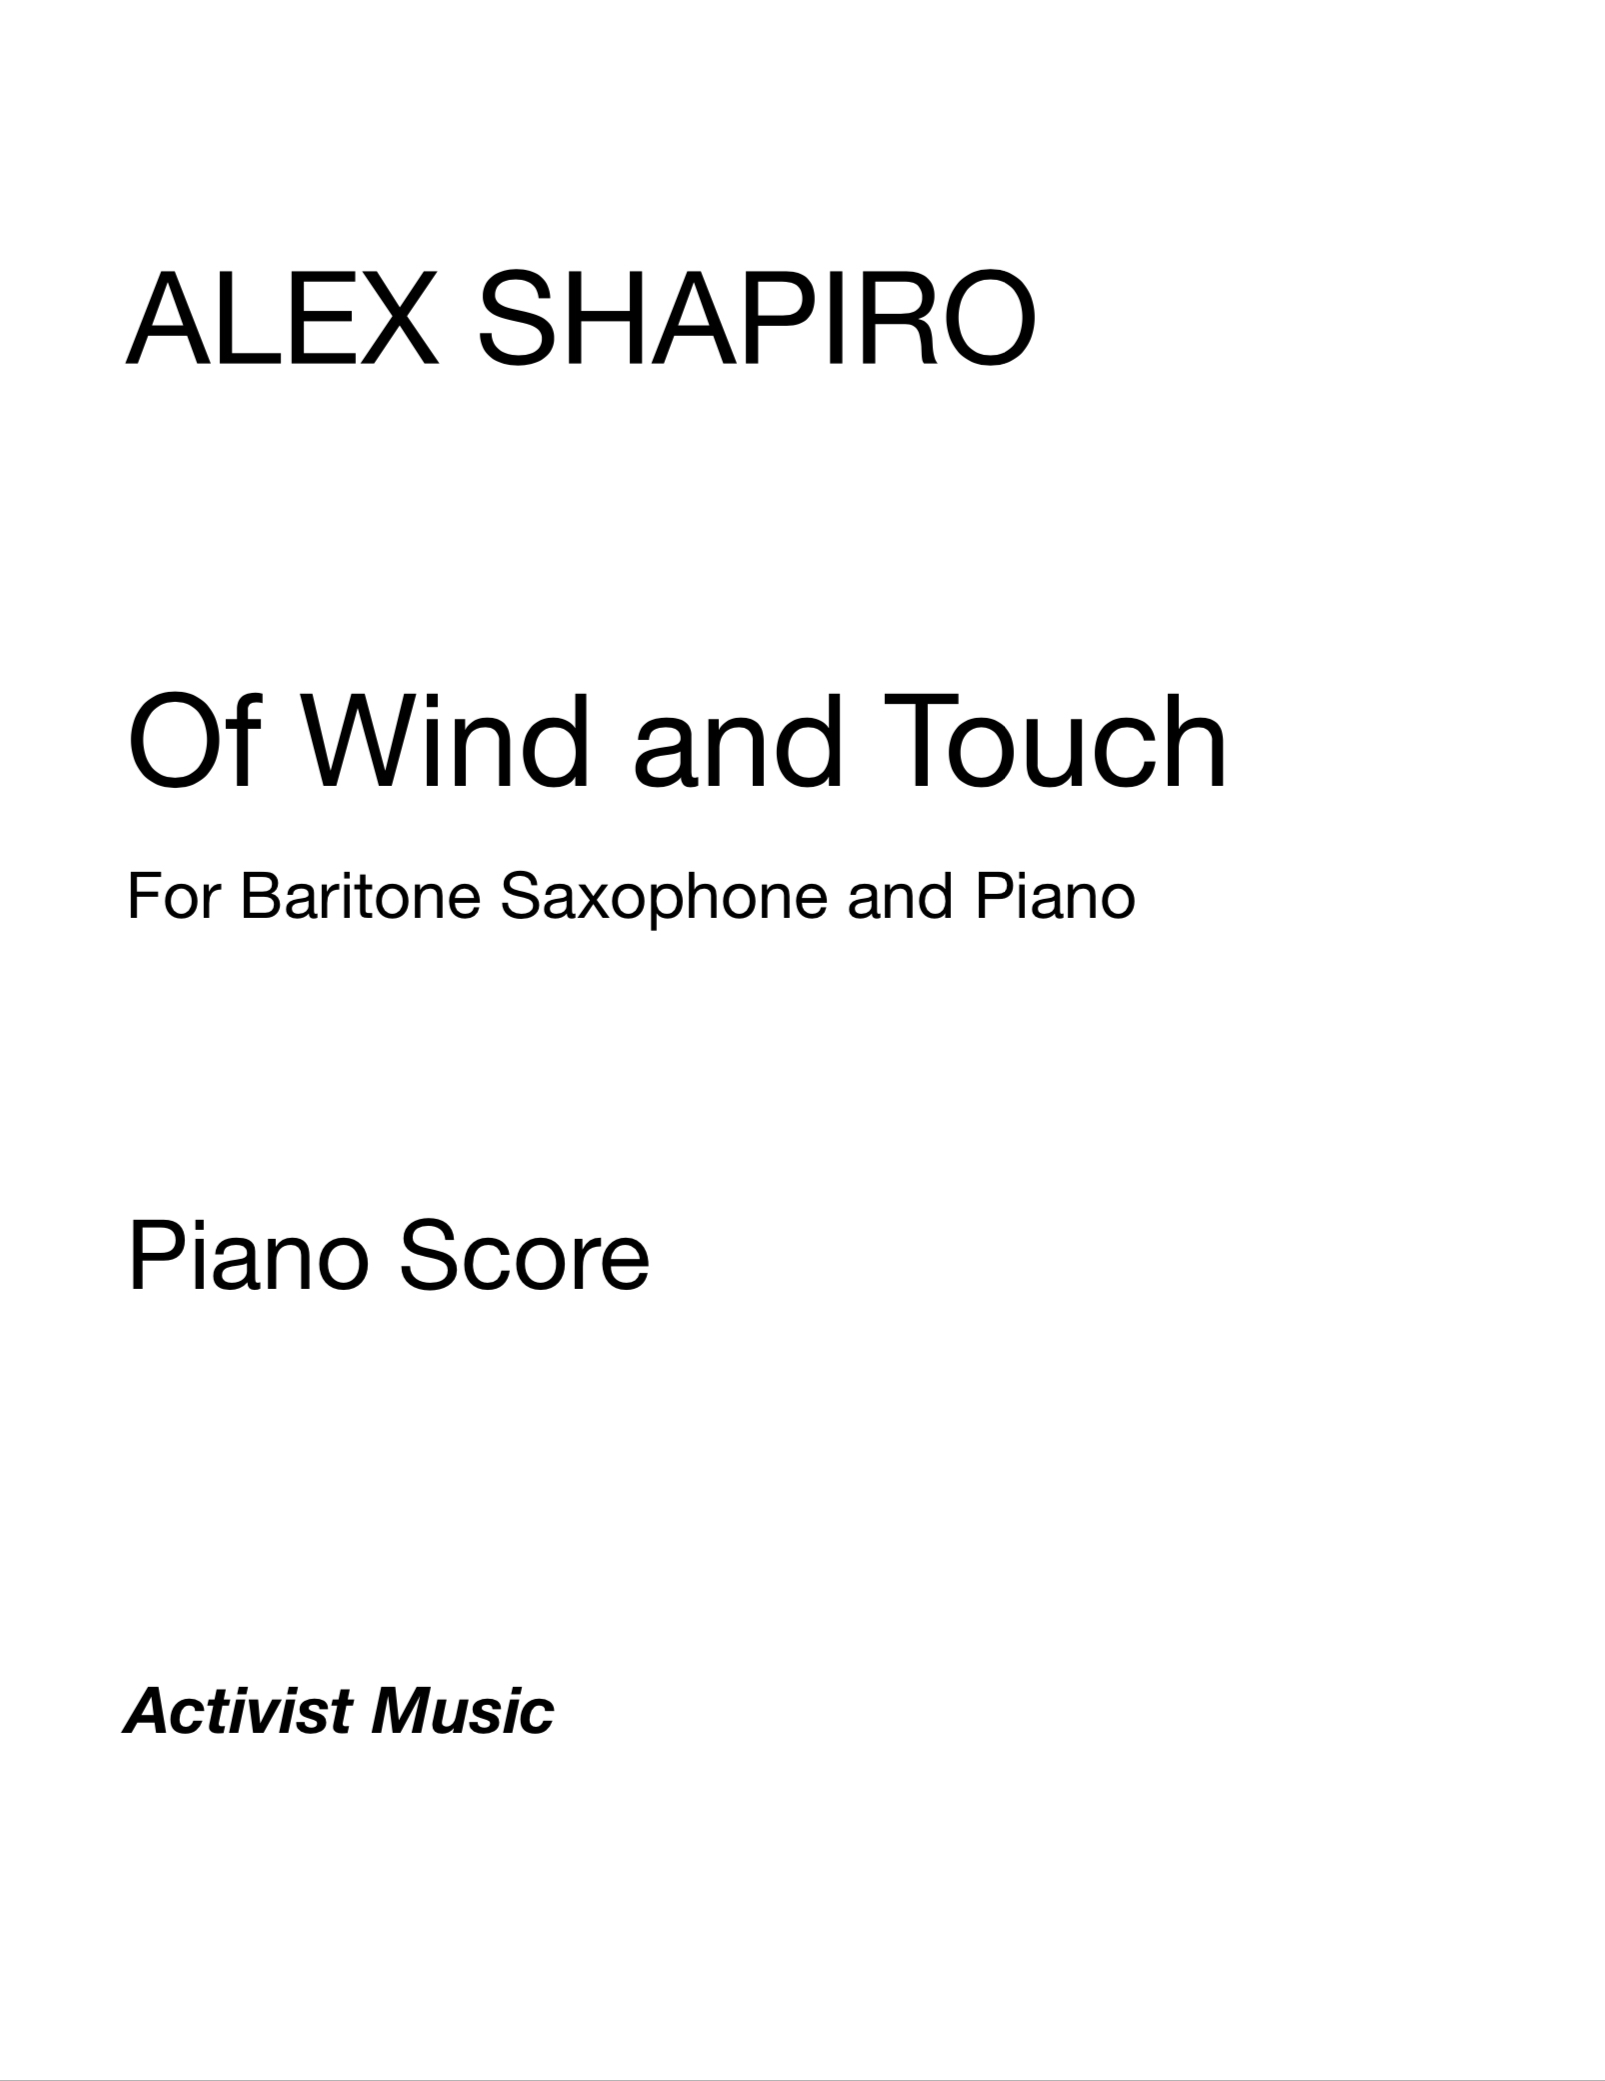 Of Wind And Touch by Alex Shapiro